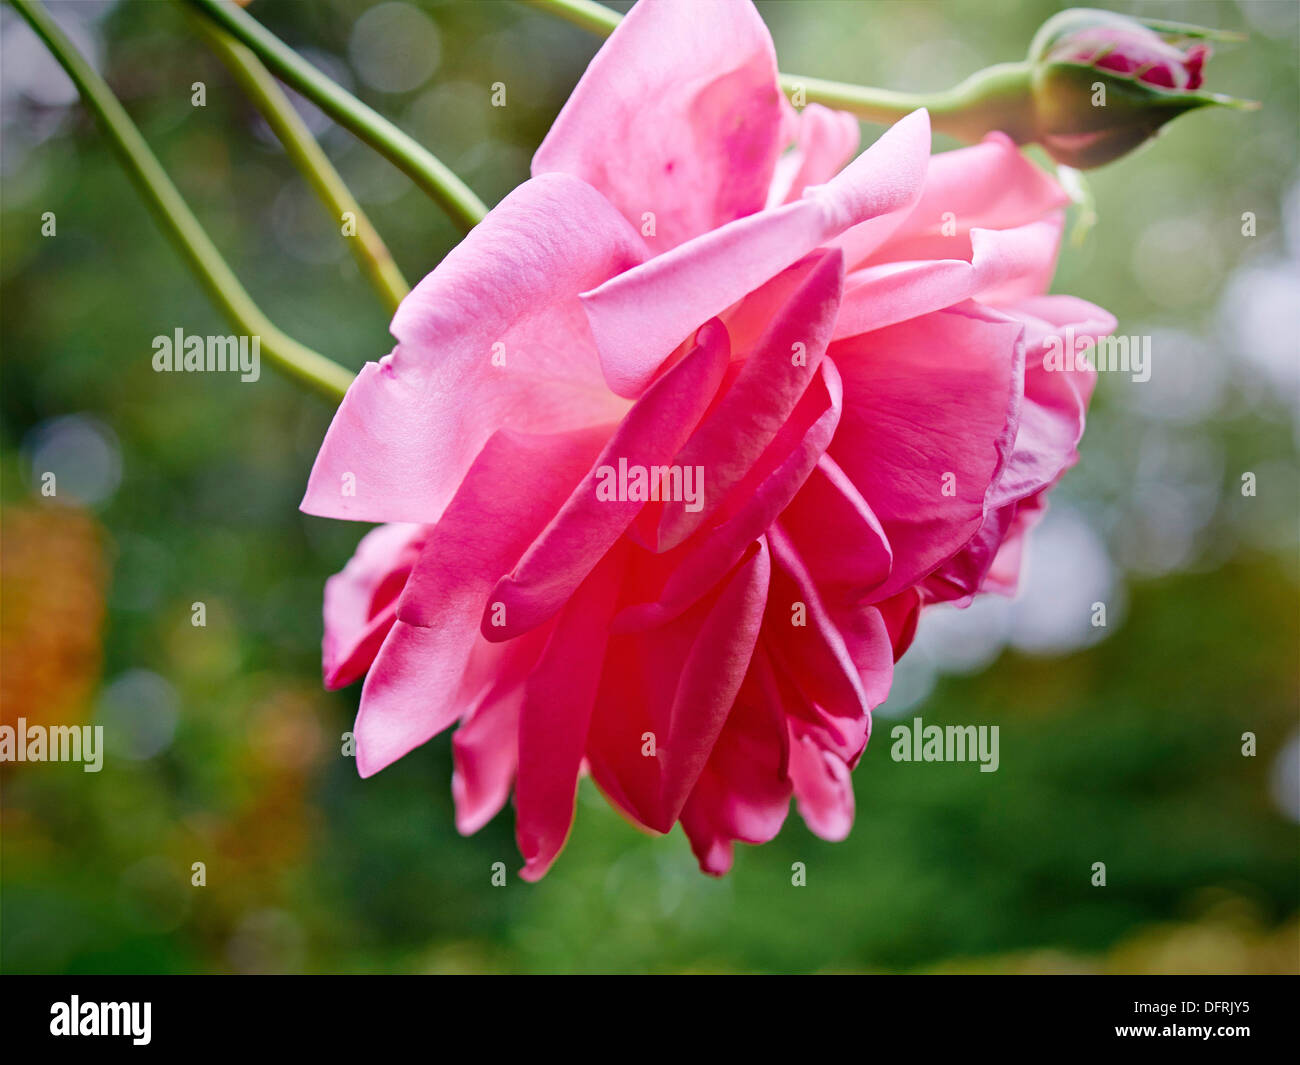 Pink roses flowering in my garden during autumn. - Stock Image